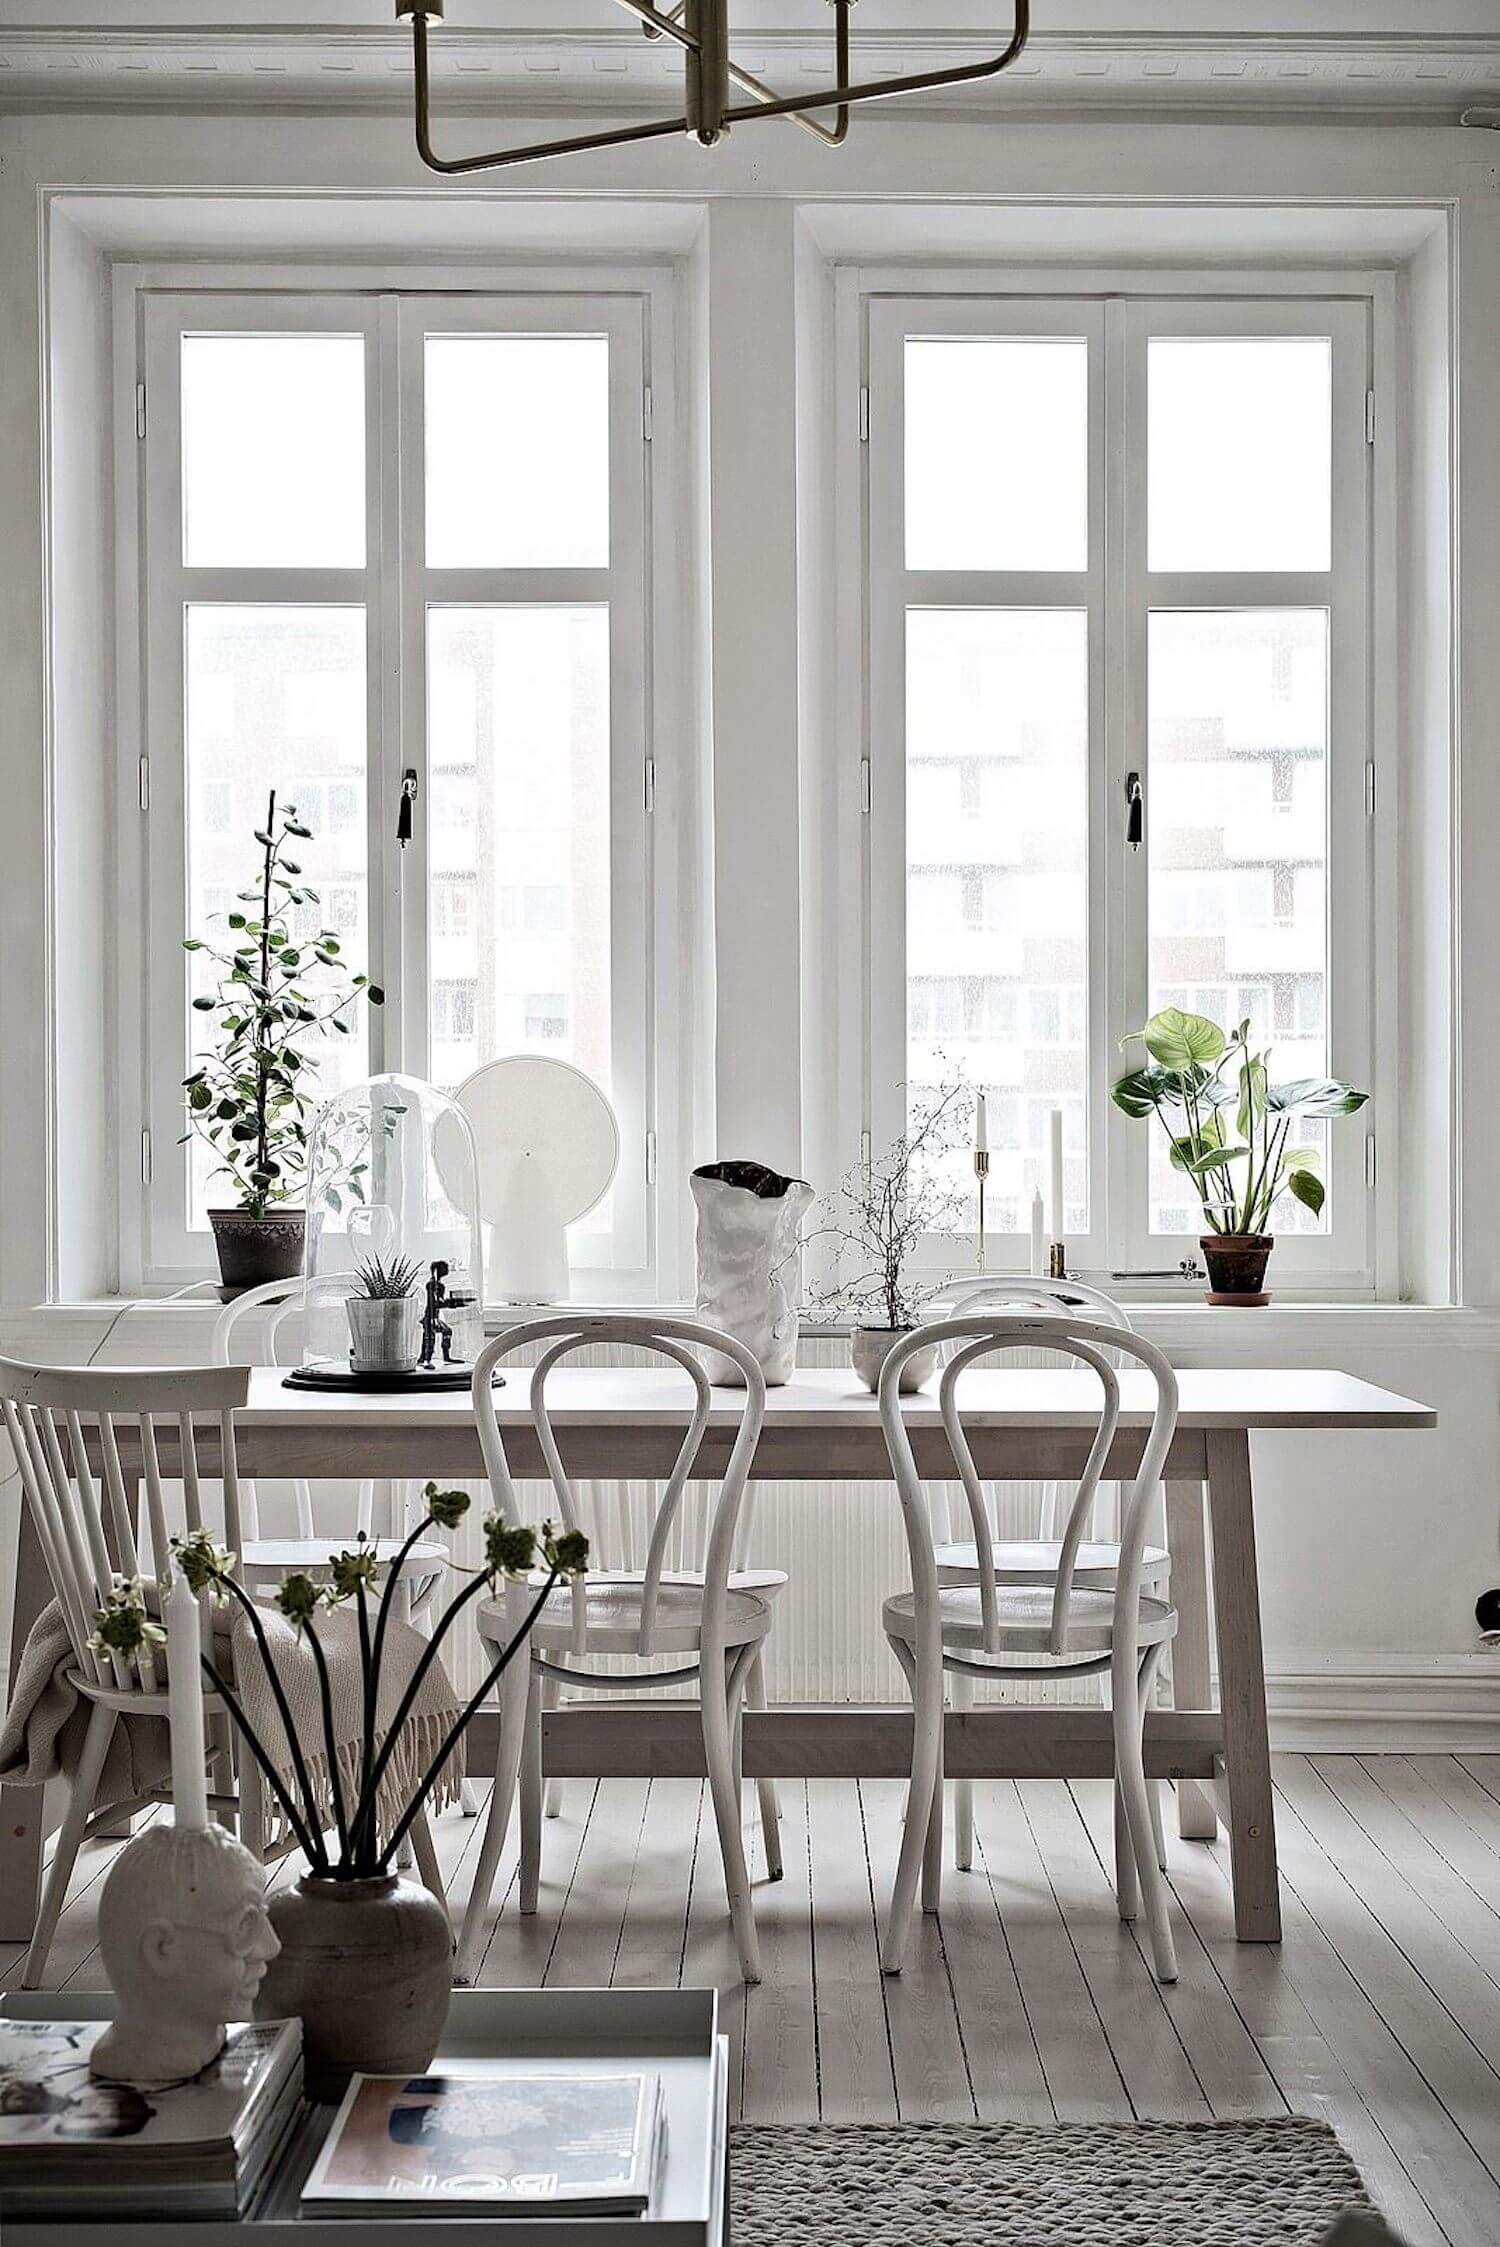 est living open house stockholm apartment 2